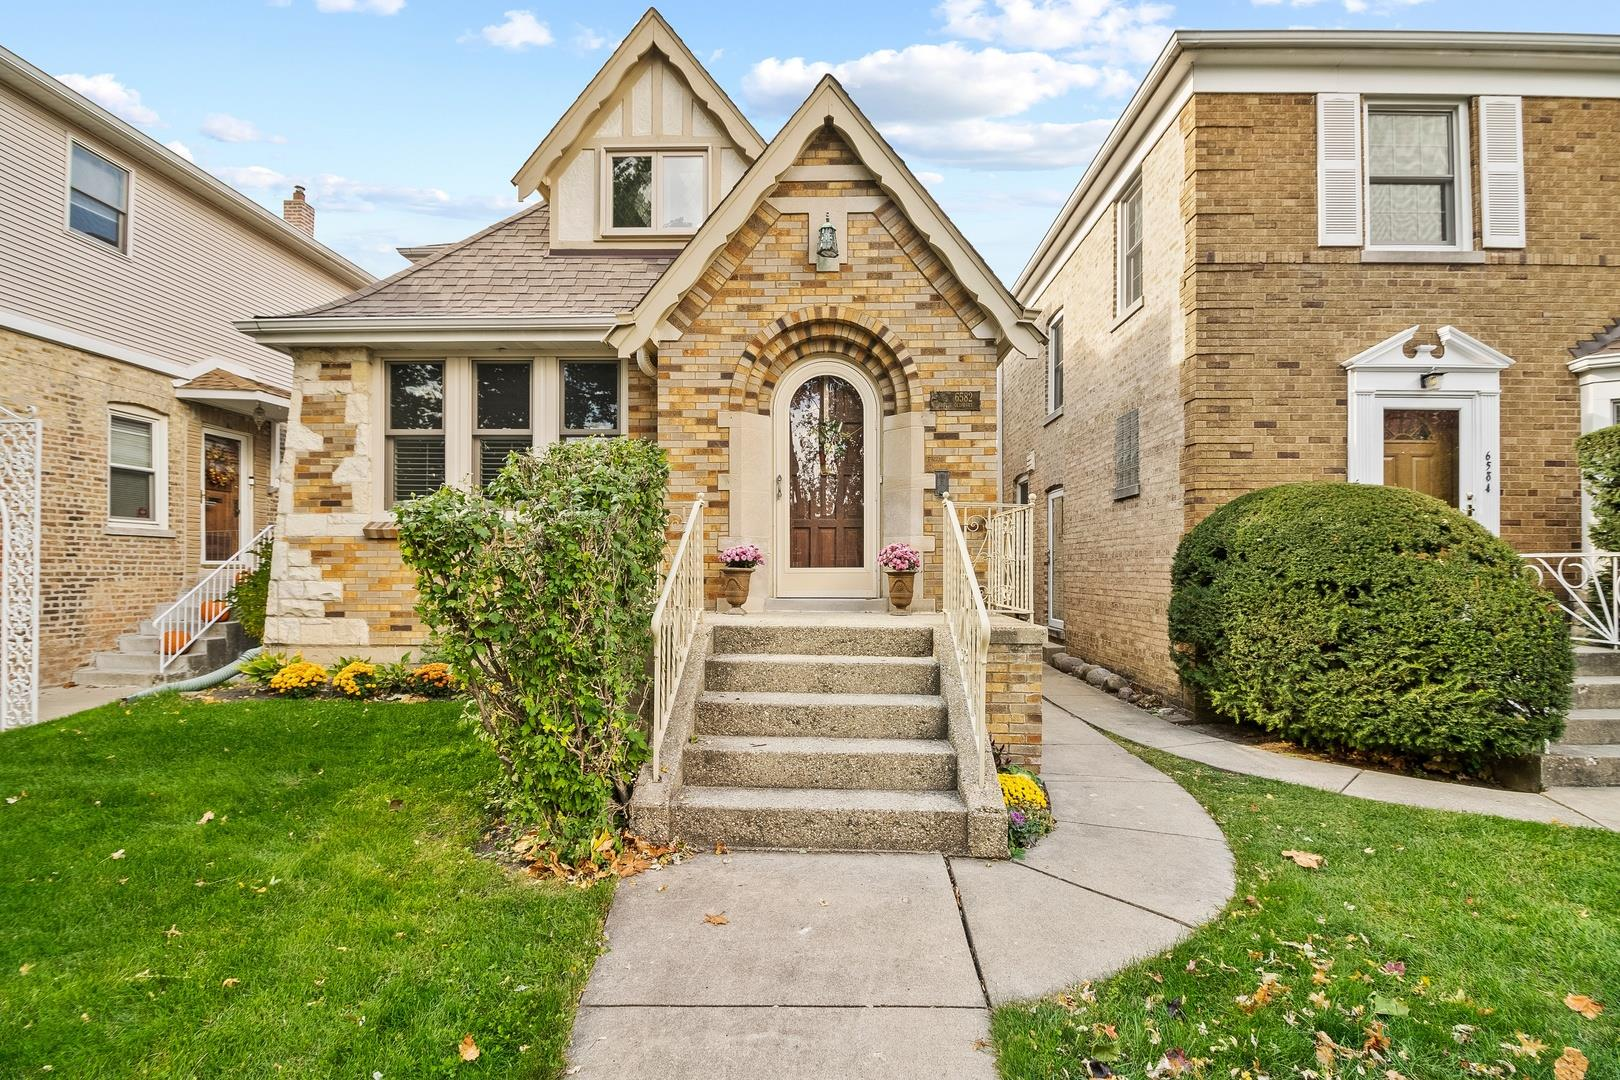 6582 N Oliphant Avenue, Chicago, IL 60631 - #: 10910444